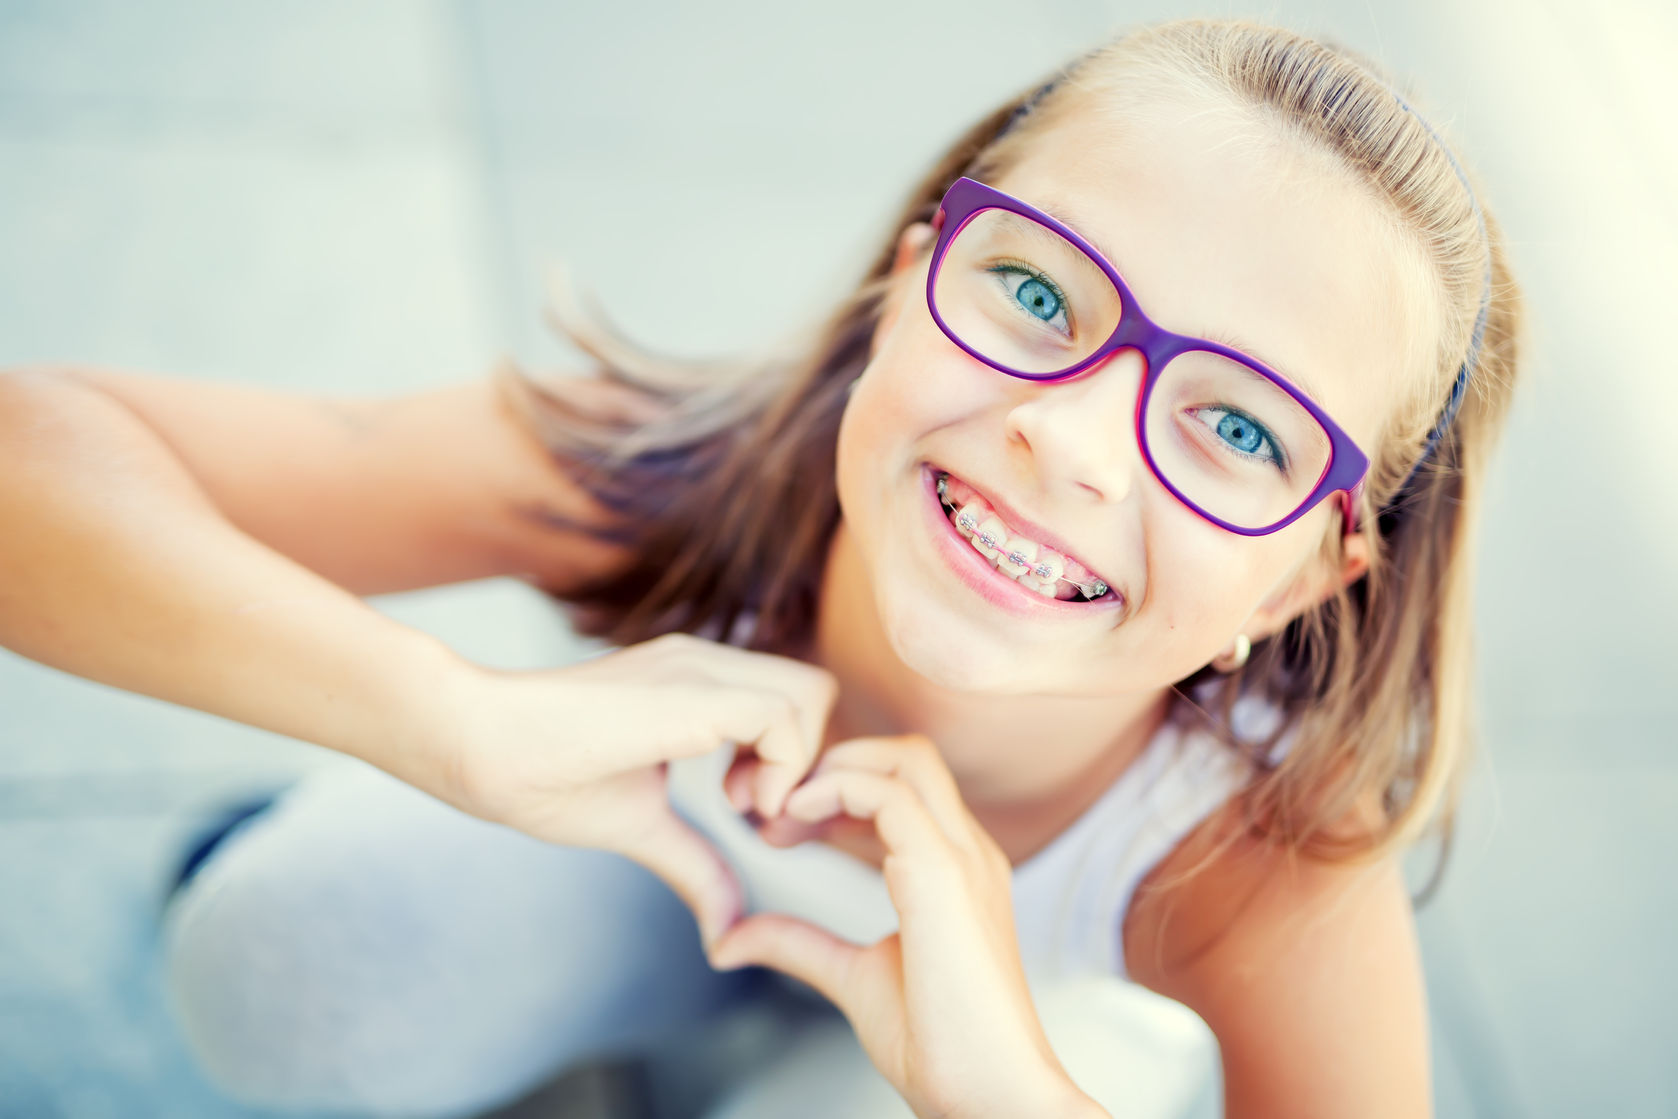 62296726 - smiling little girl in with braces and glasses showing heart with hands.